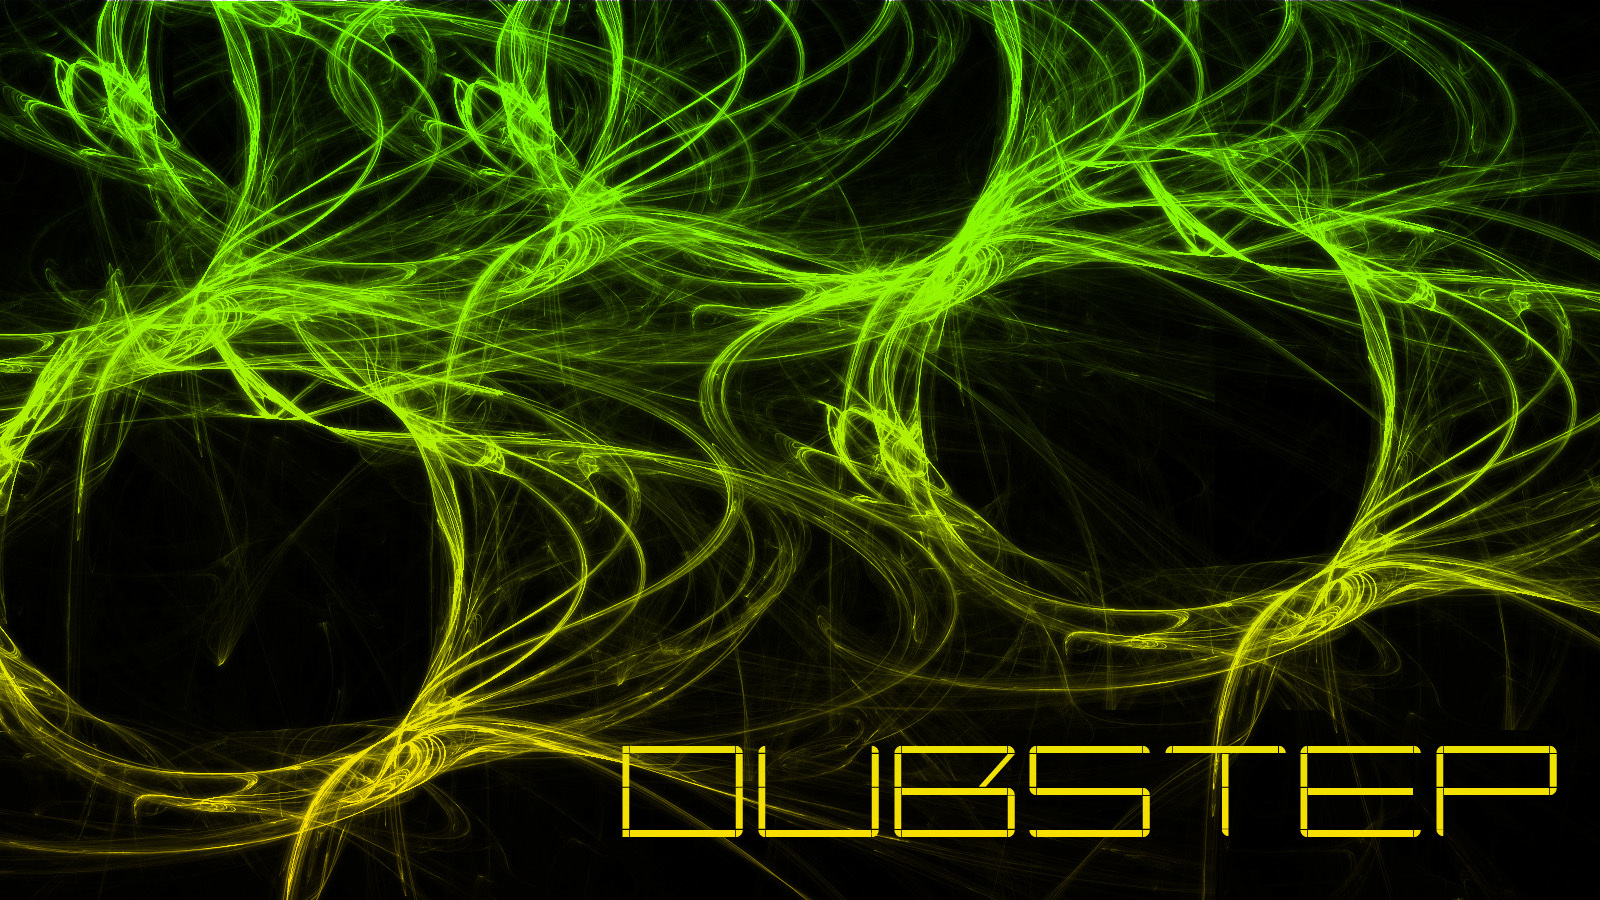 green abstract text fractals dubstep